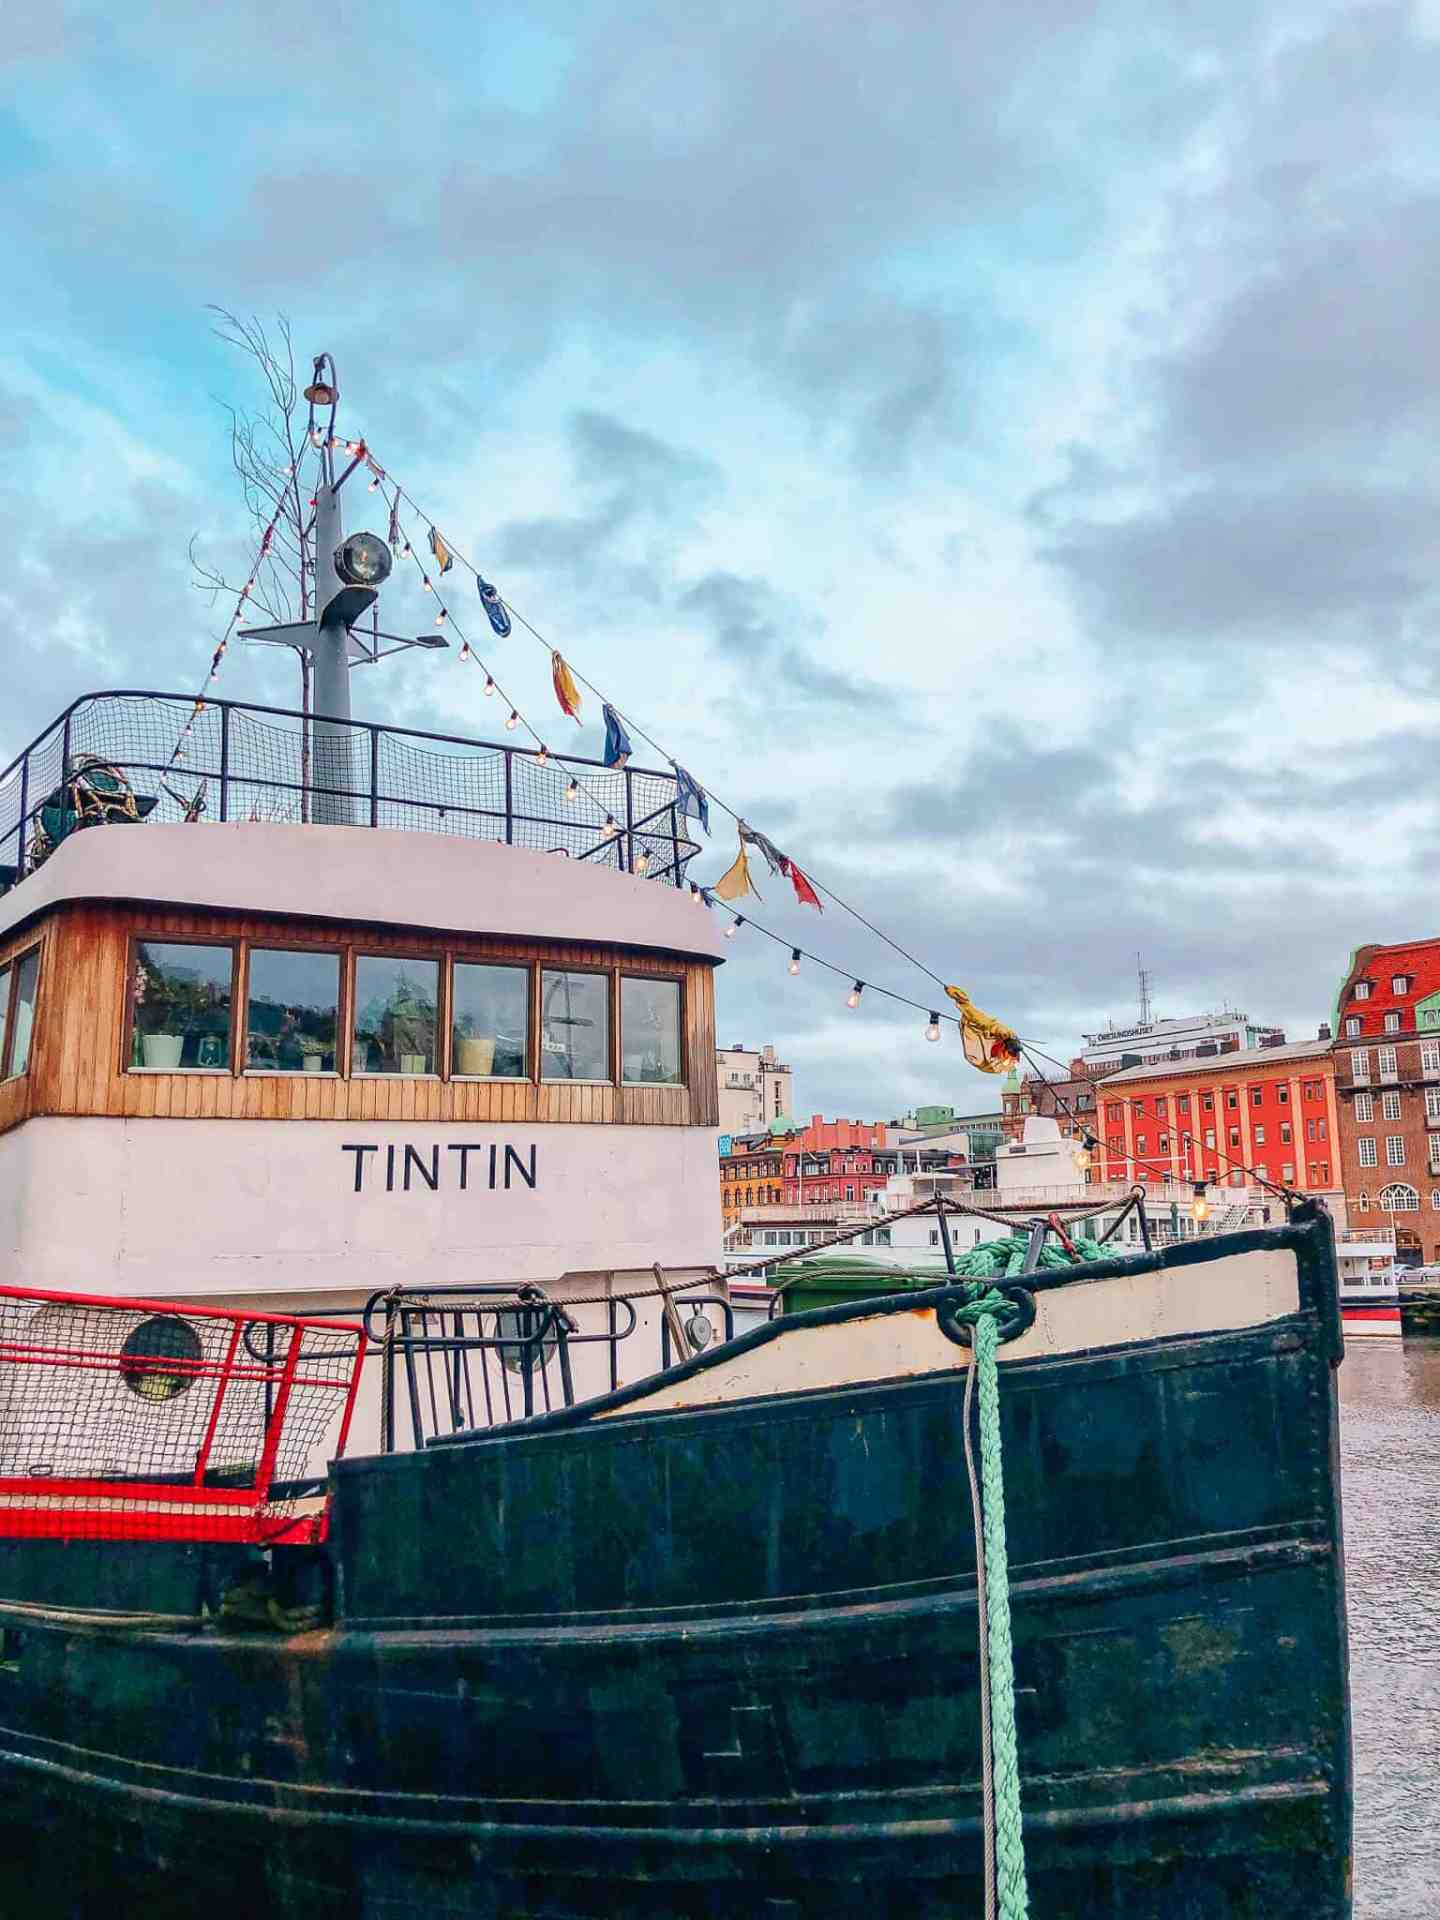 Tintin boat on harbour with coloured buildings